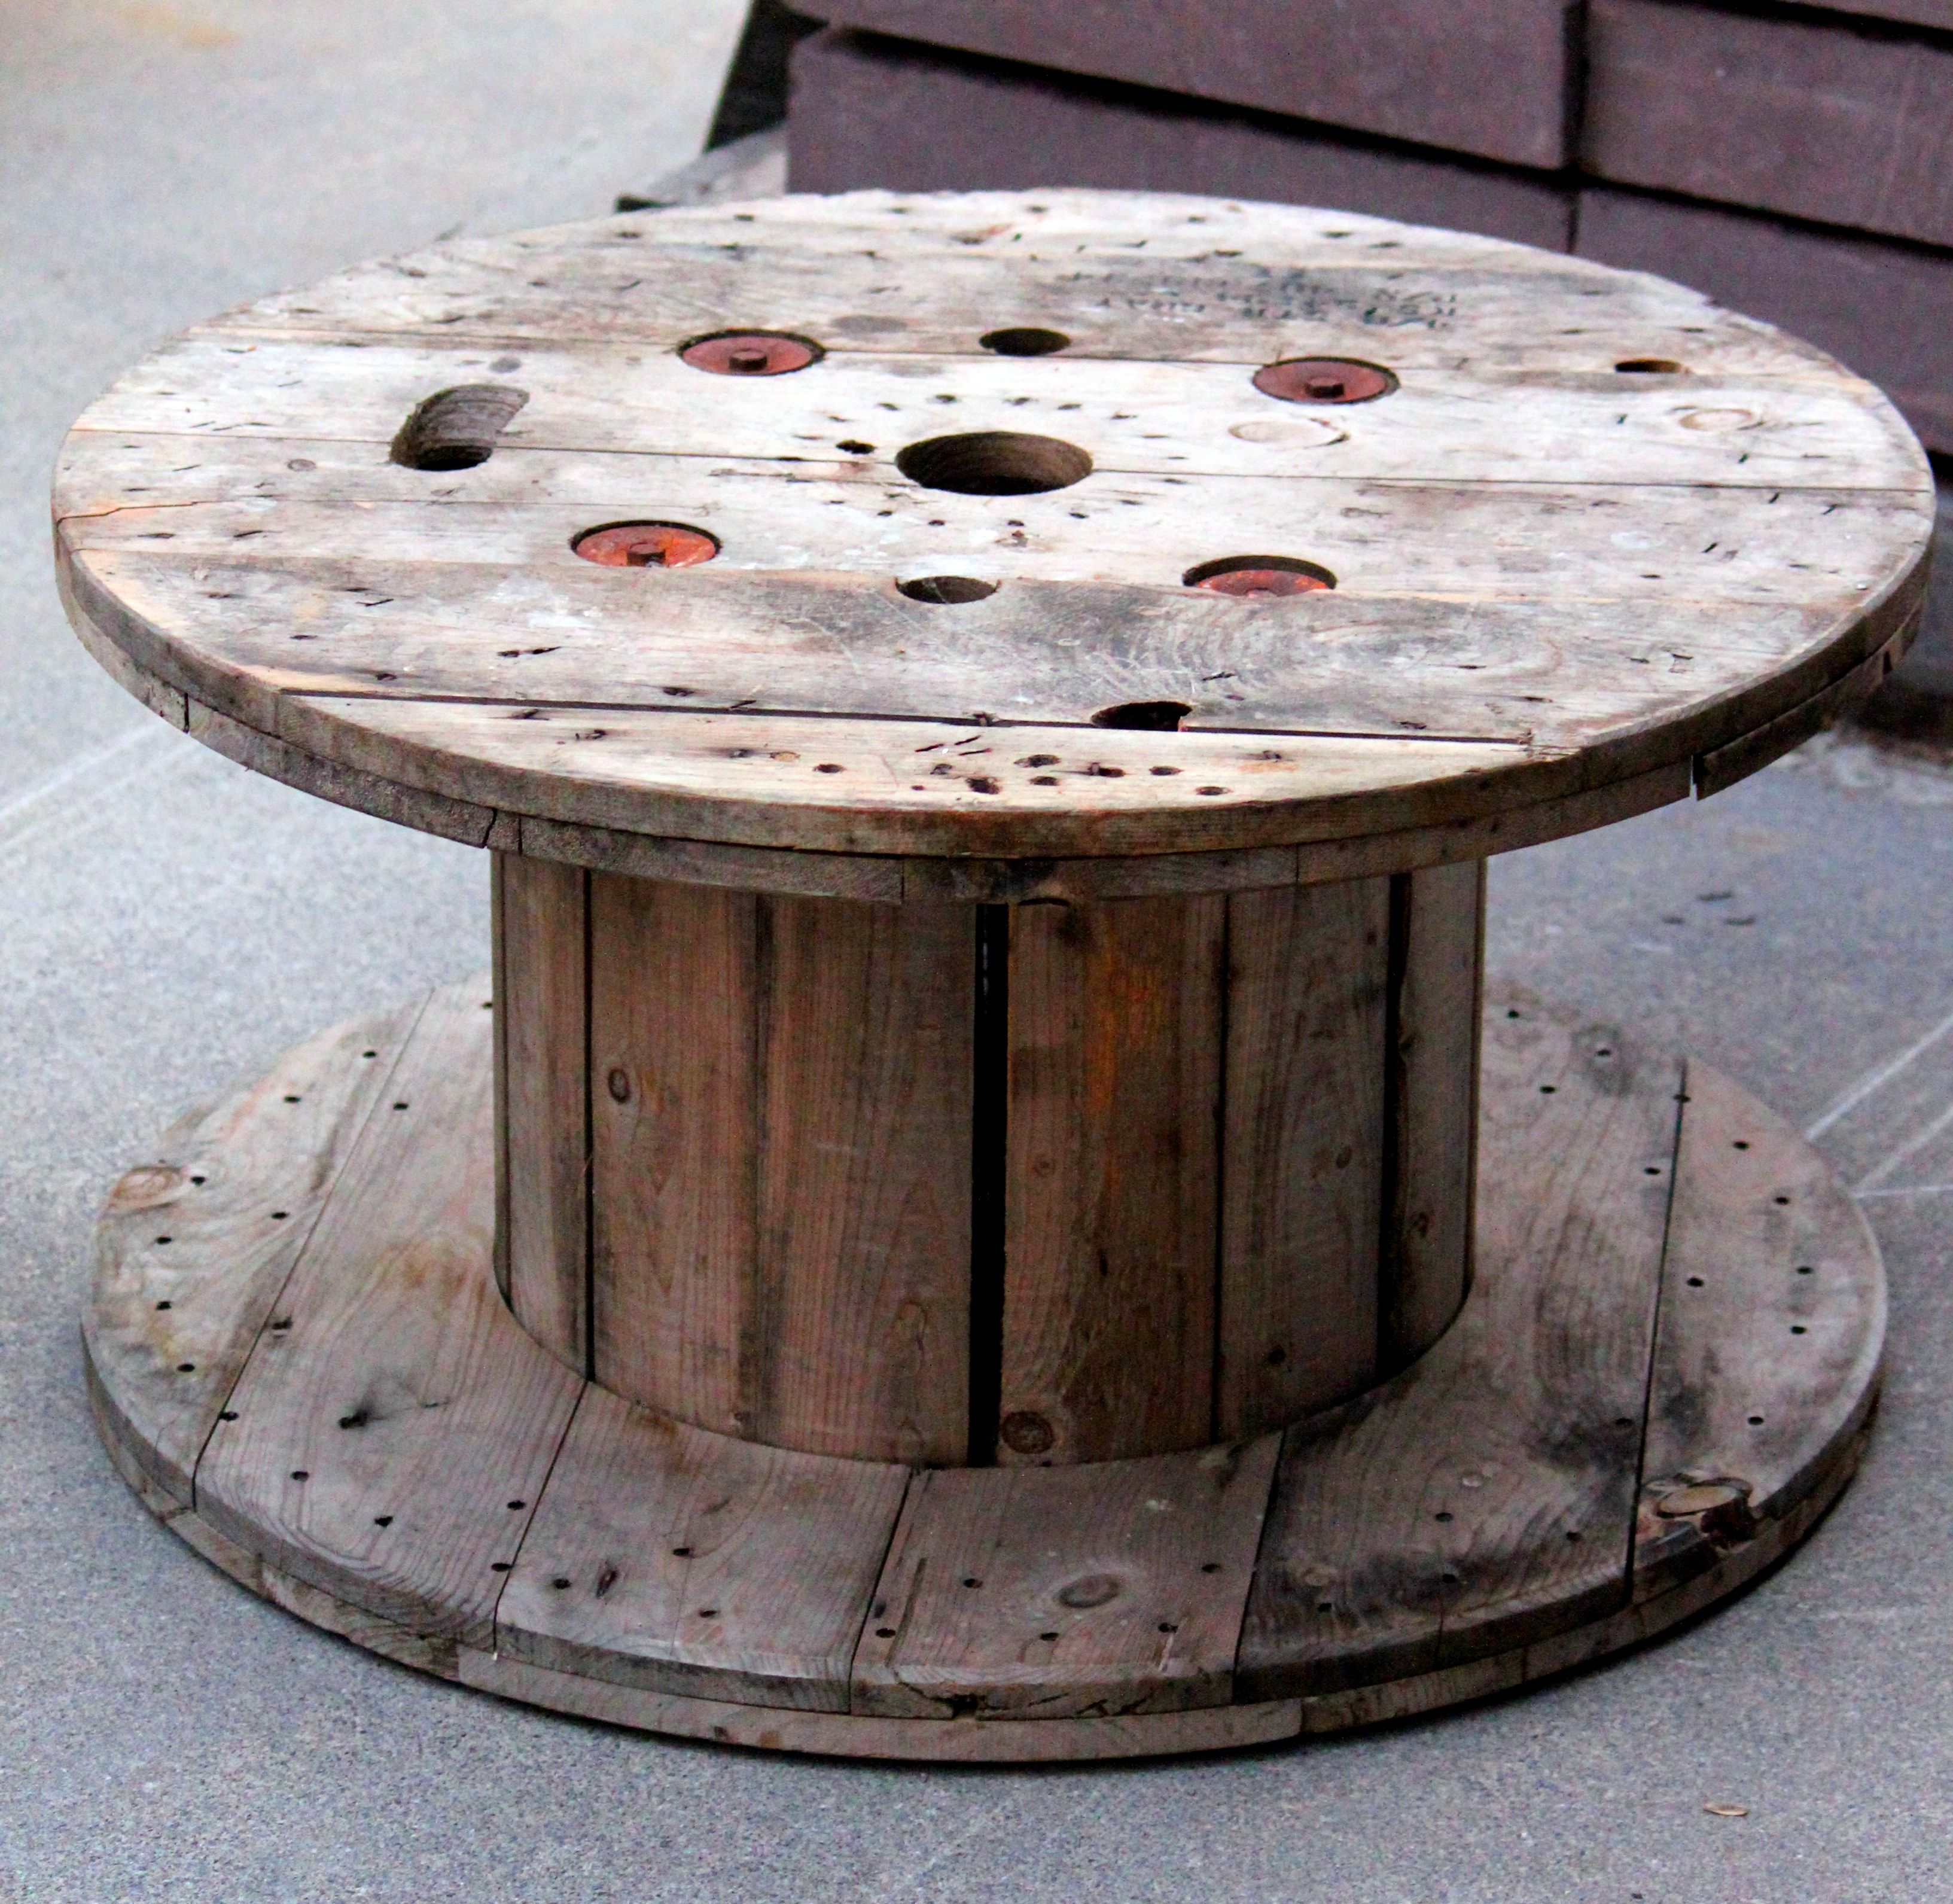 Cable spool tables the site i pinned this from has the best cable spool tables the site i pinned this from has the best collection of pictures geotapseo Image collections